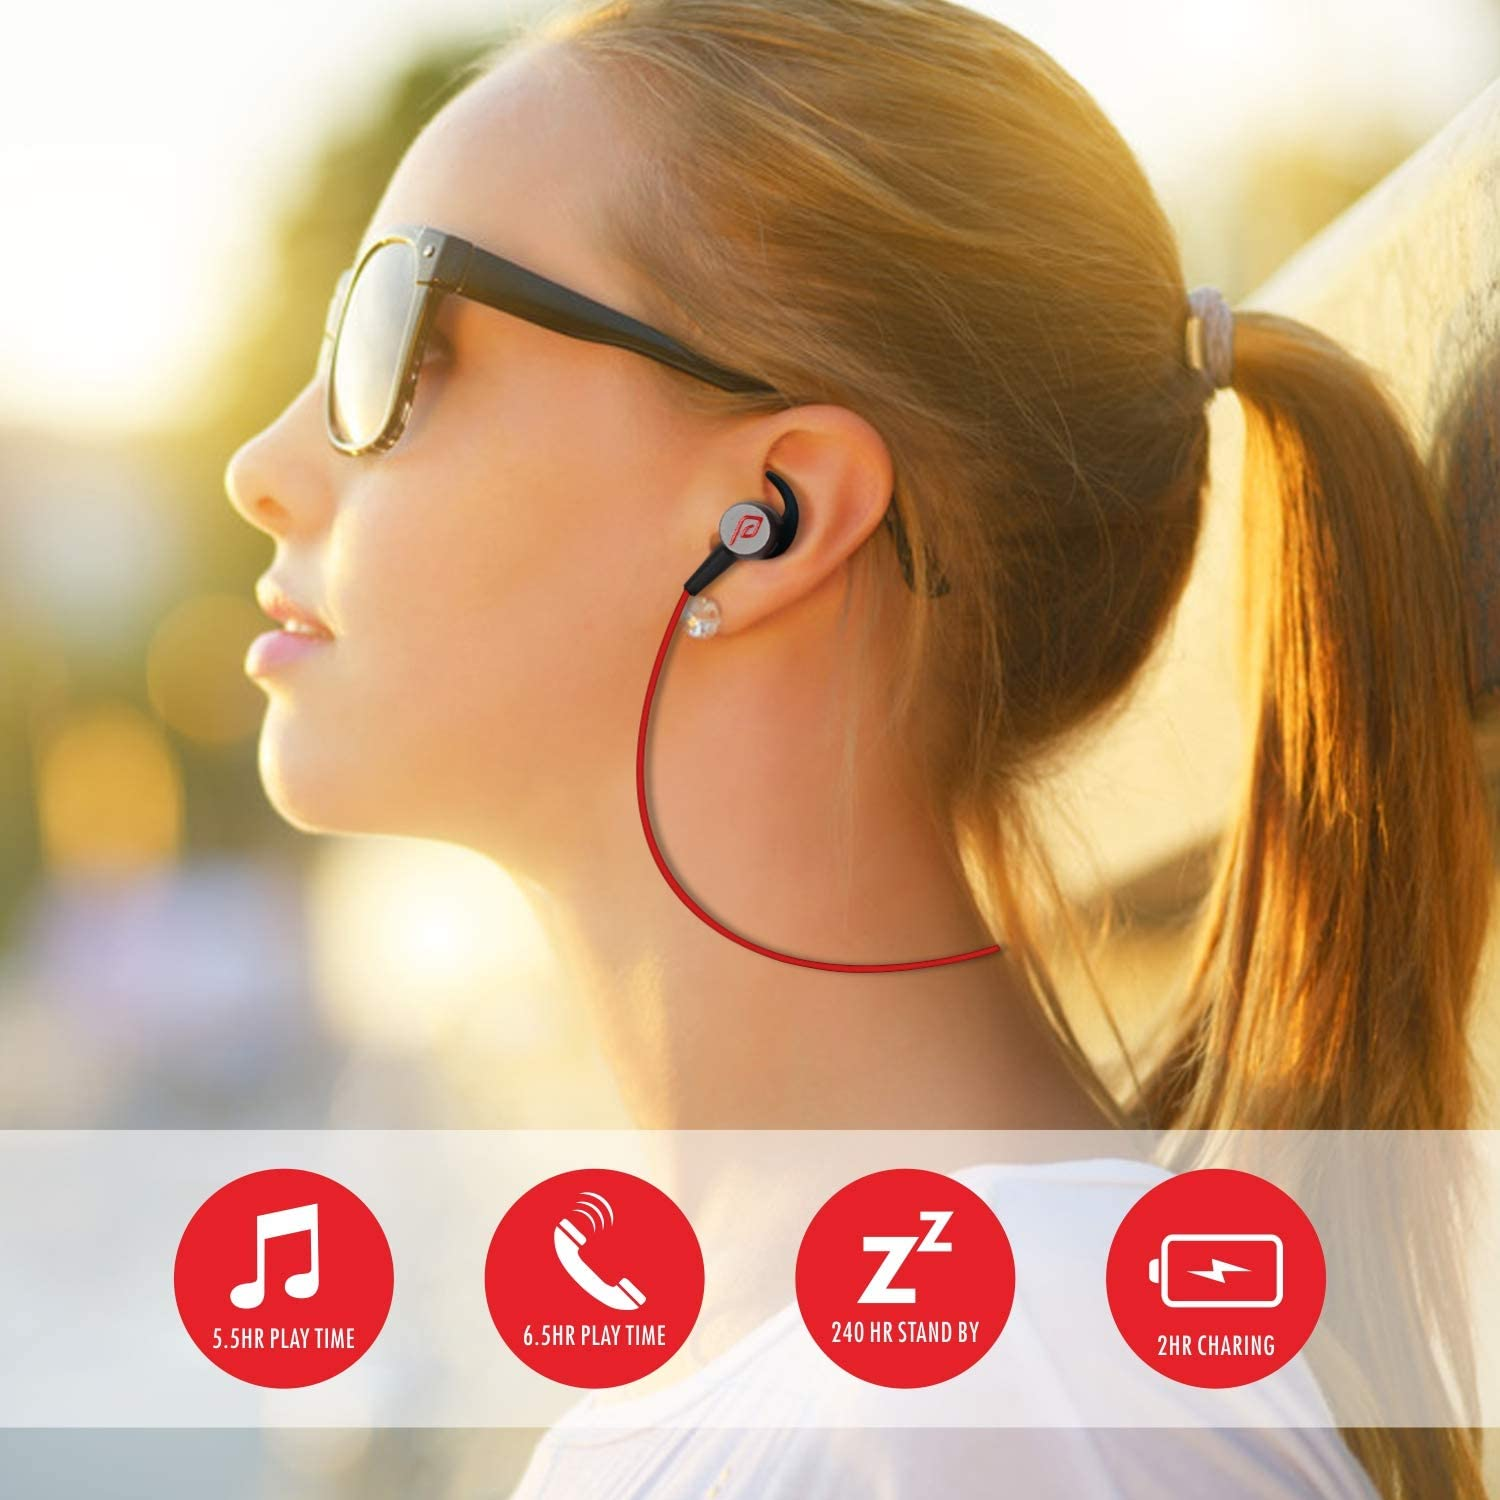 Bluetooth Headphones Black//red Parasom A1 Magnetic Microphone V4.1 Wireless Stereo Bluetooth Earphones Sport Headset In-Ear Noise Isolation Headphone Earbuds for Gym Running -Sweatproof